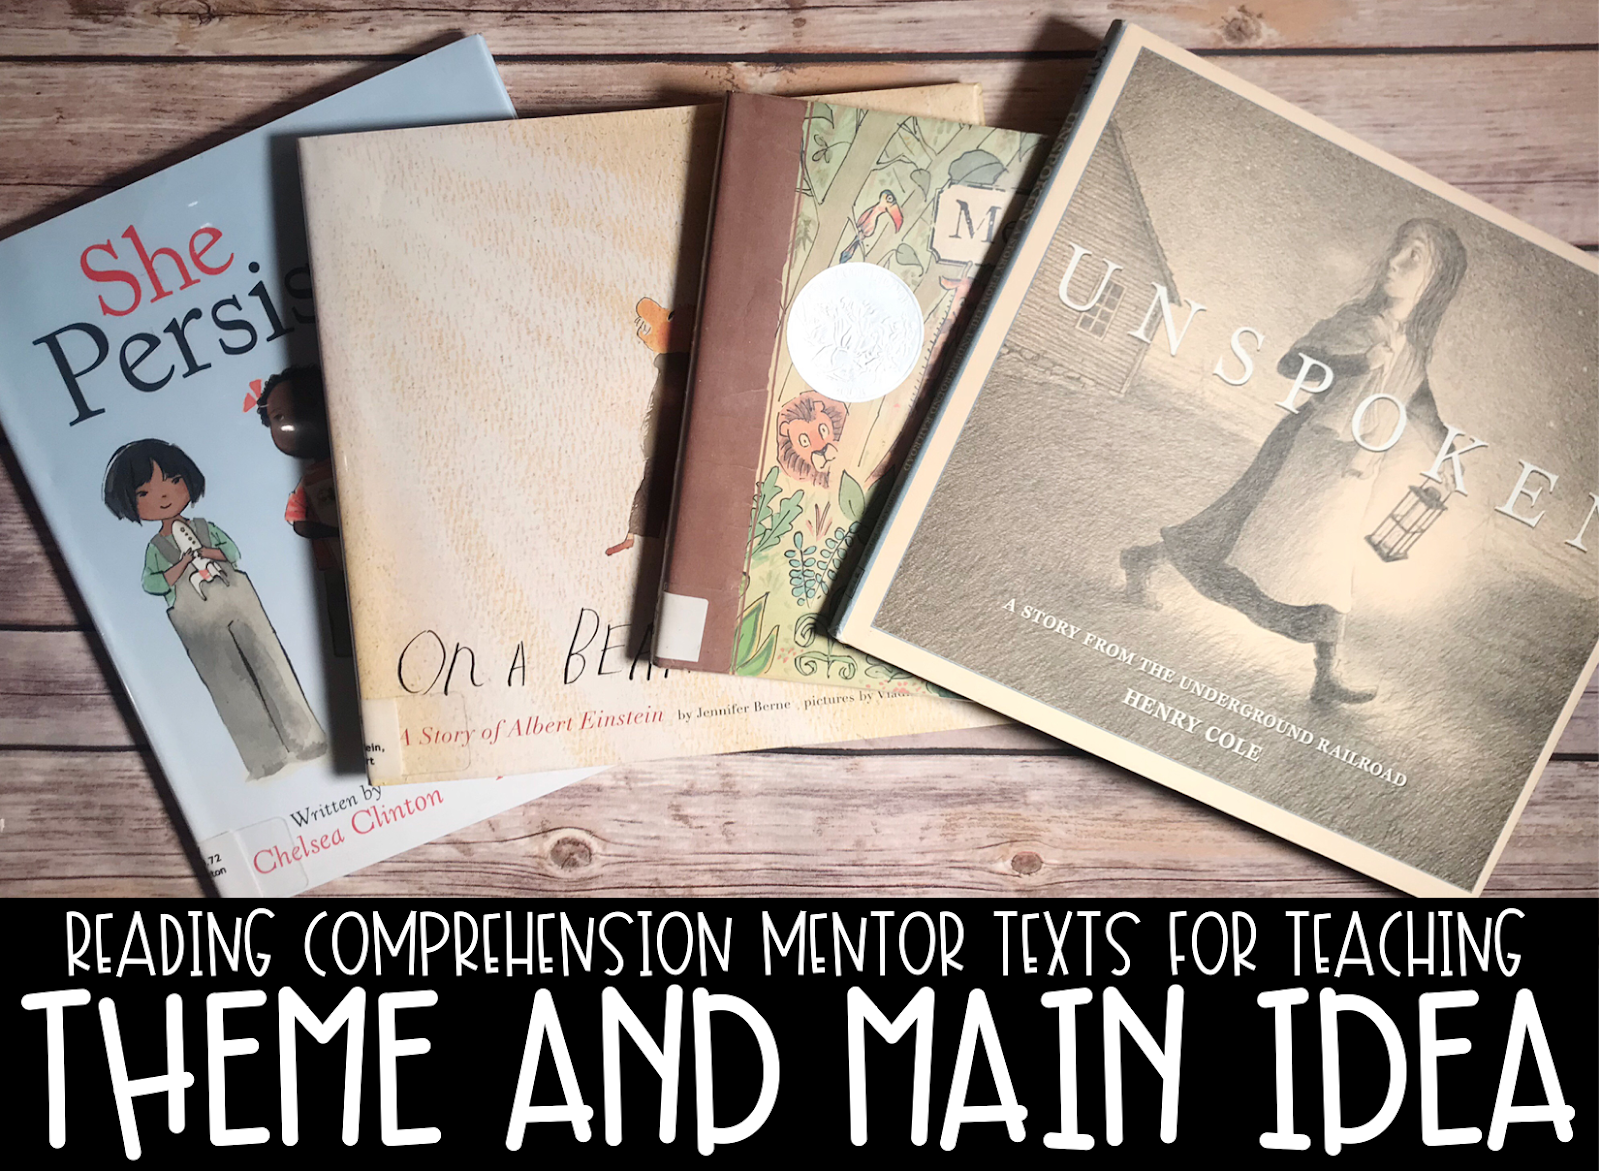 4 Mentor Texts on table